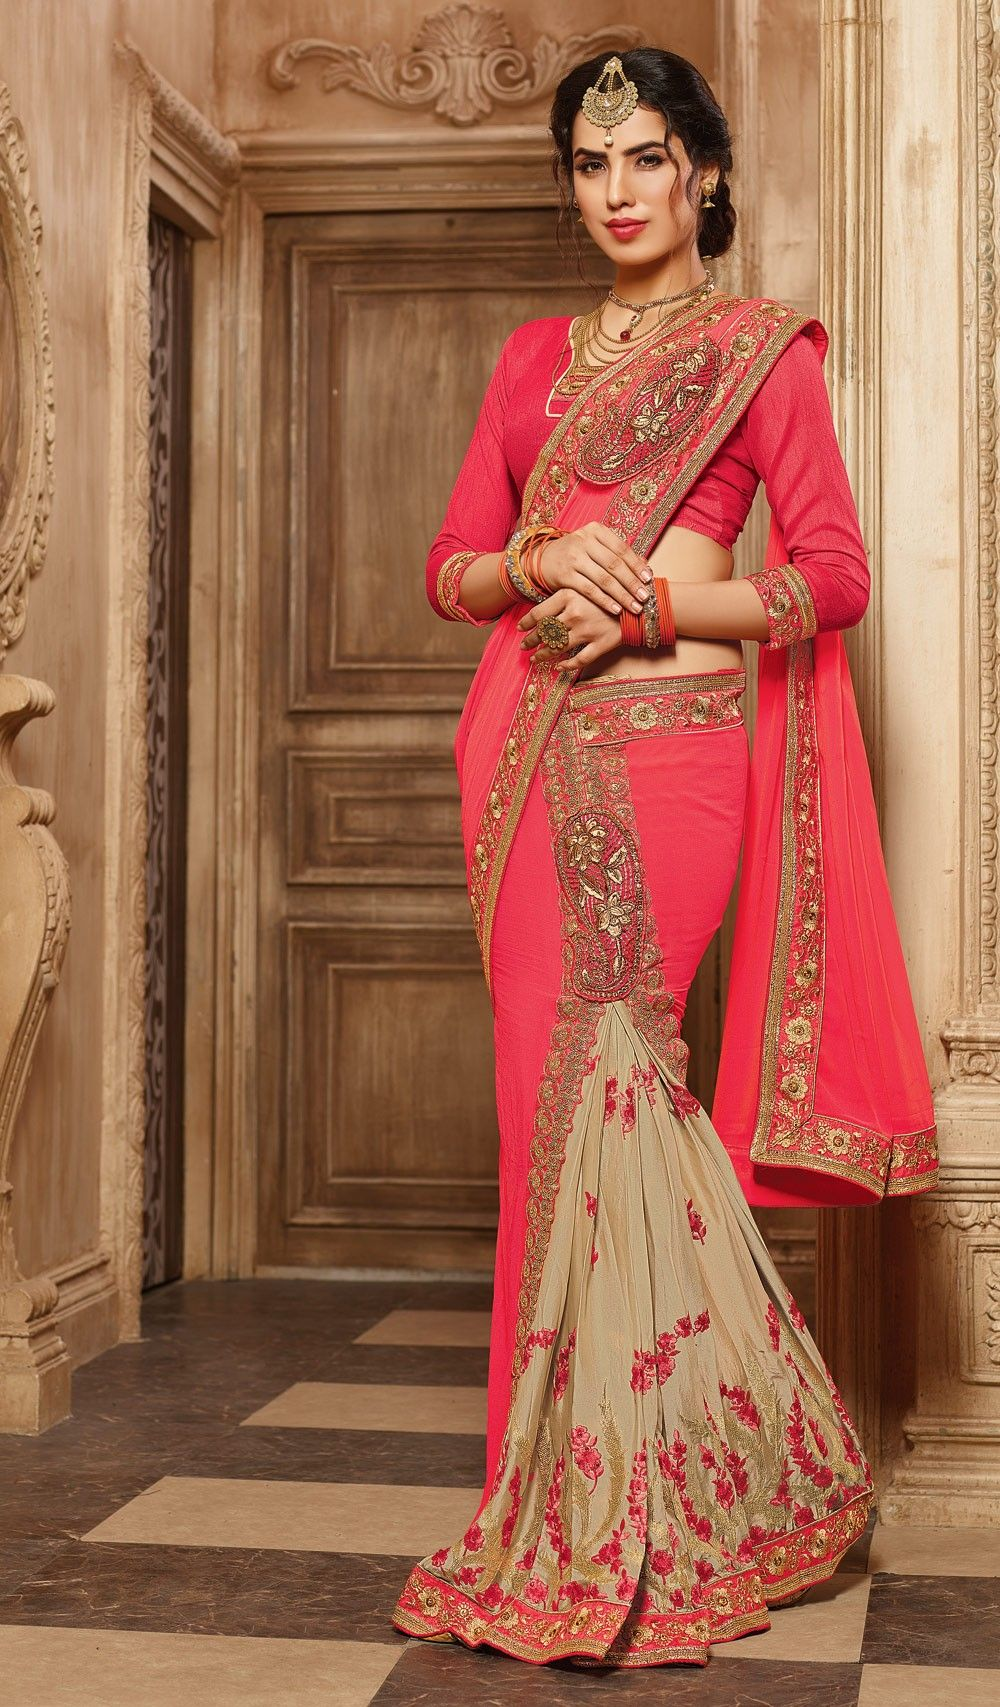 554e6be050 Trendy Pink & Beige Ready pleated saree for festivals | Indian ...